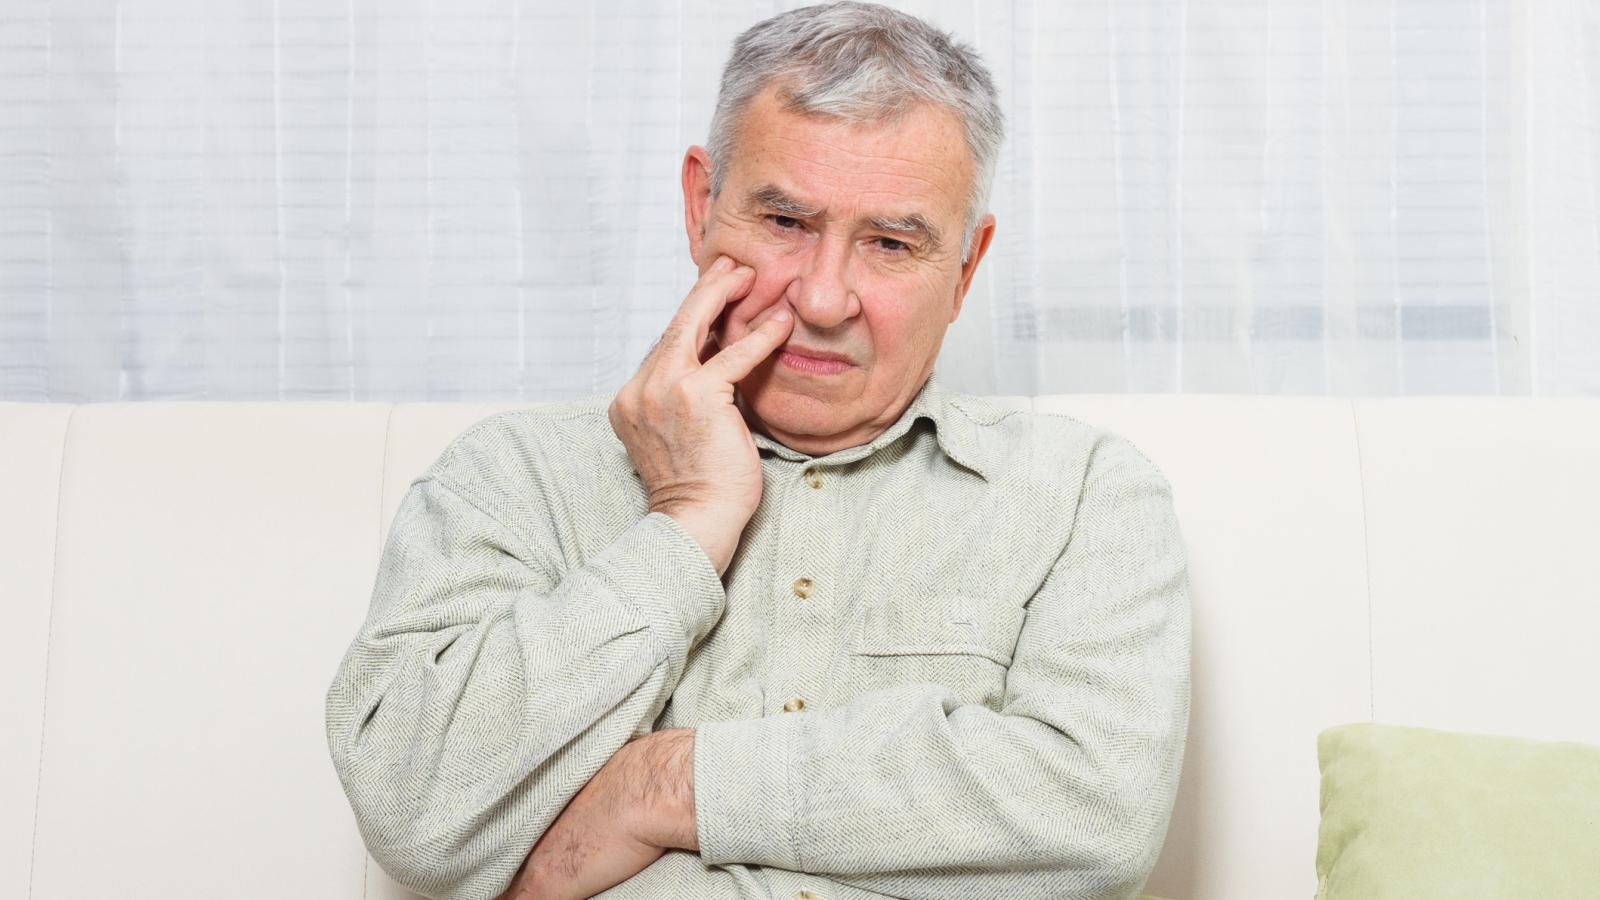 Older man with a sore mouth